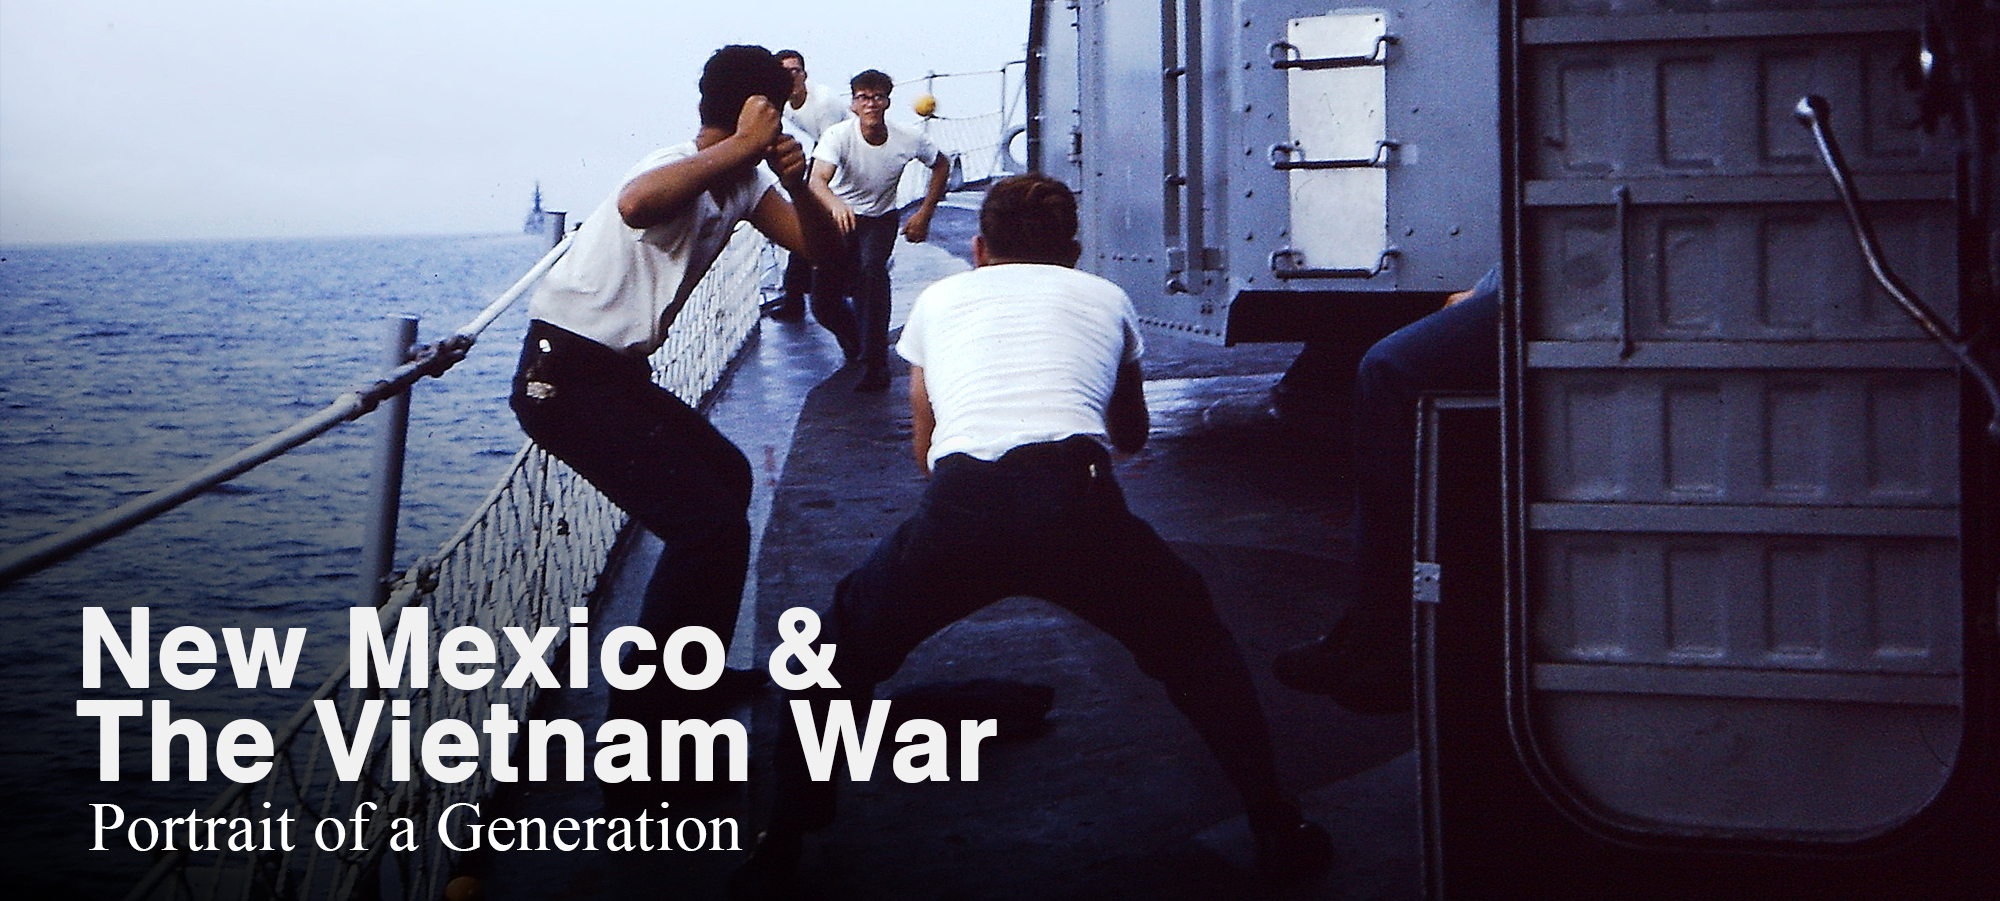 New Mexico & The Vietnam War - banner image